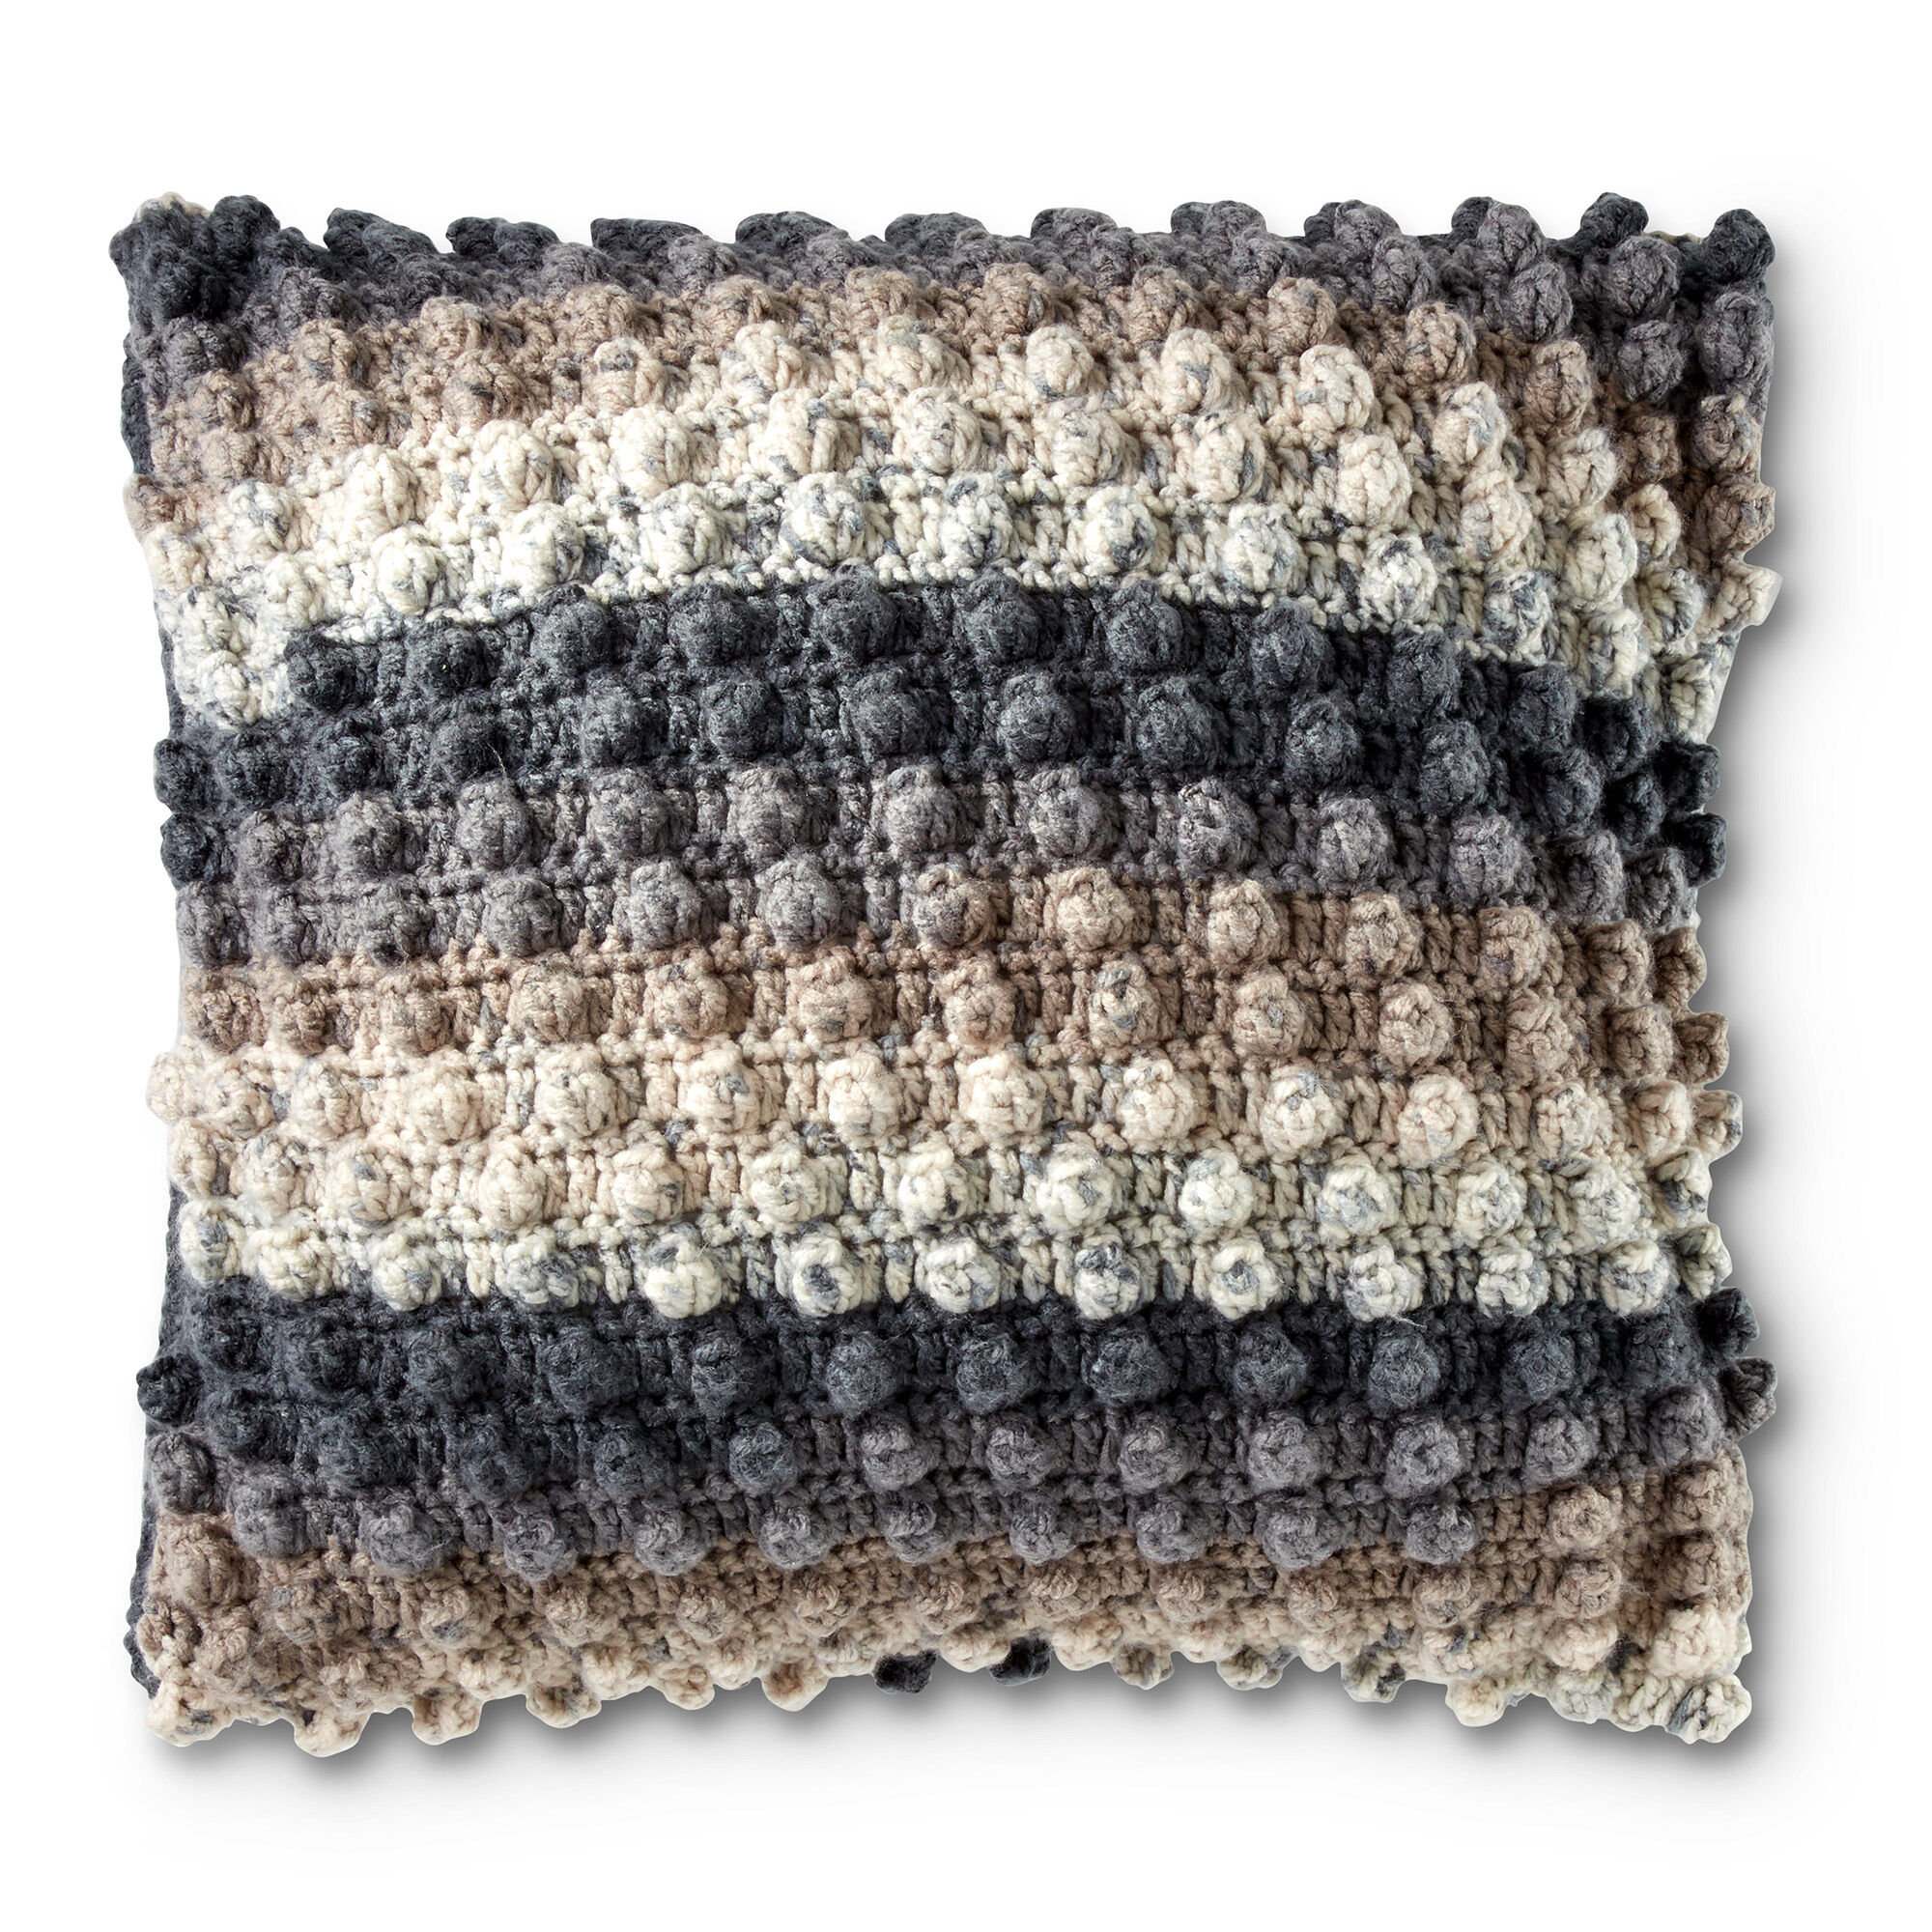 Caron Crochet Popcorn Pillow Pattern | Yarnspirations